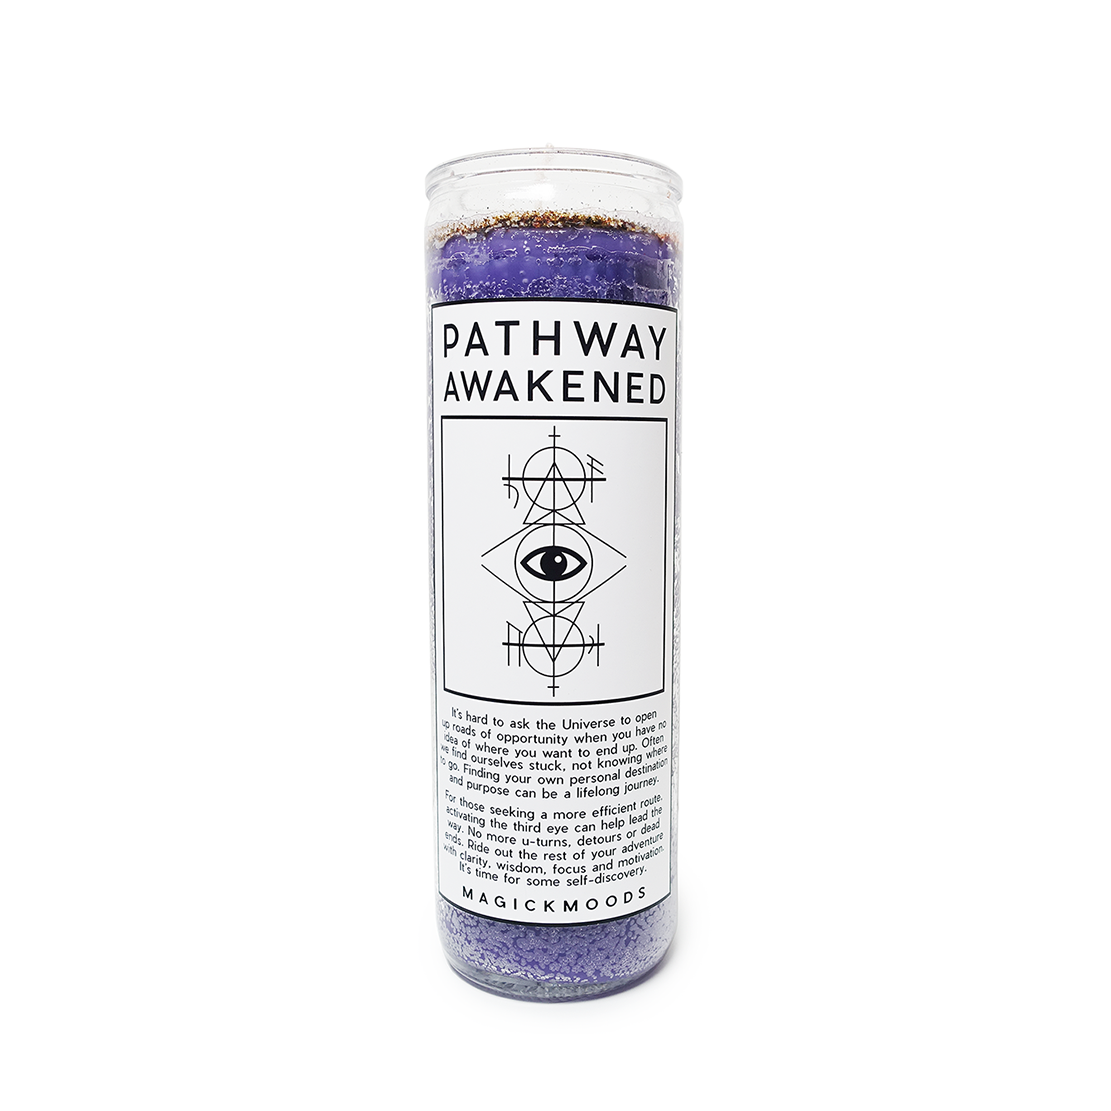 Pathway Awakened 7-Day Meditation Candle - PREORDER - Ships by 12/15